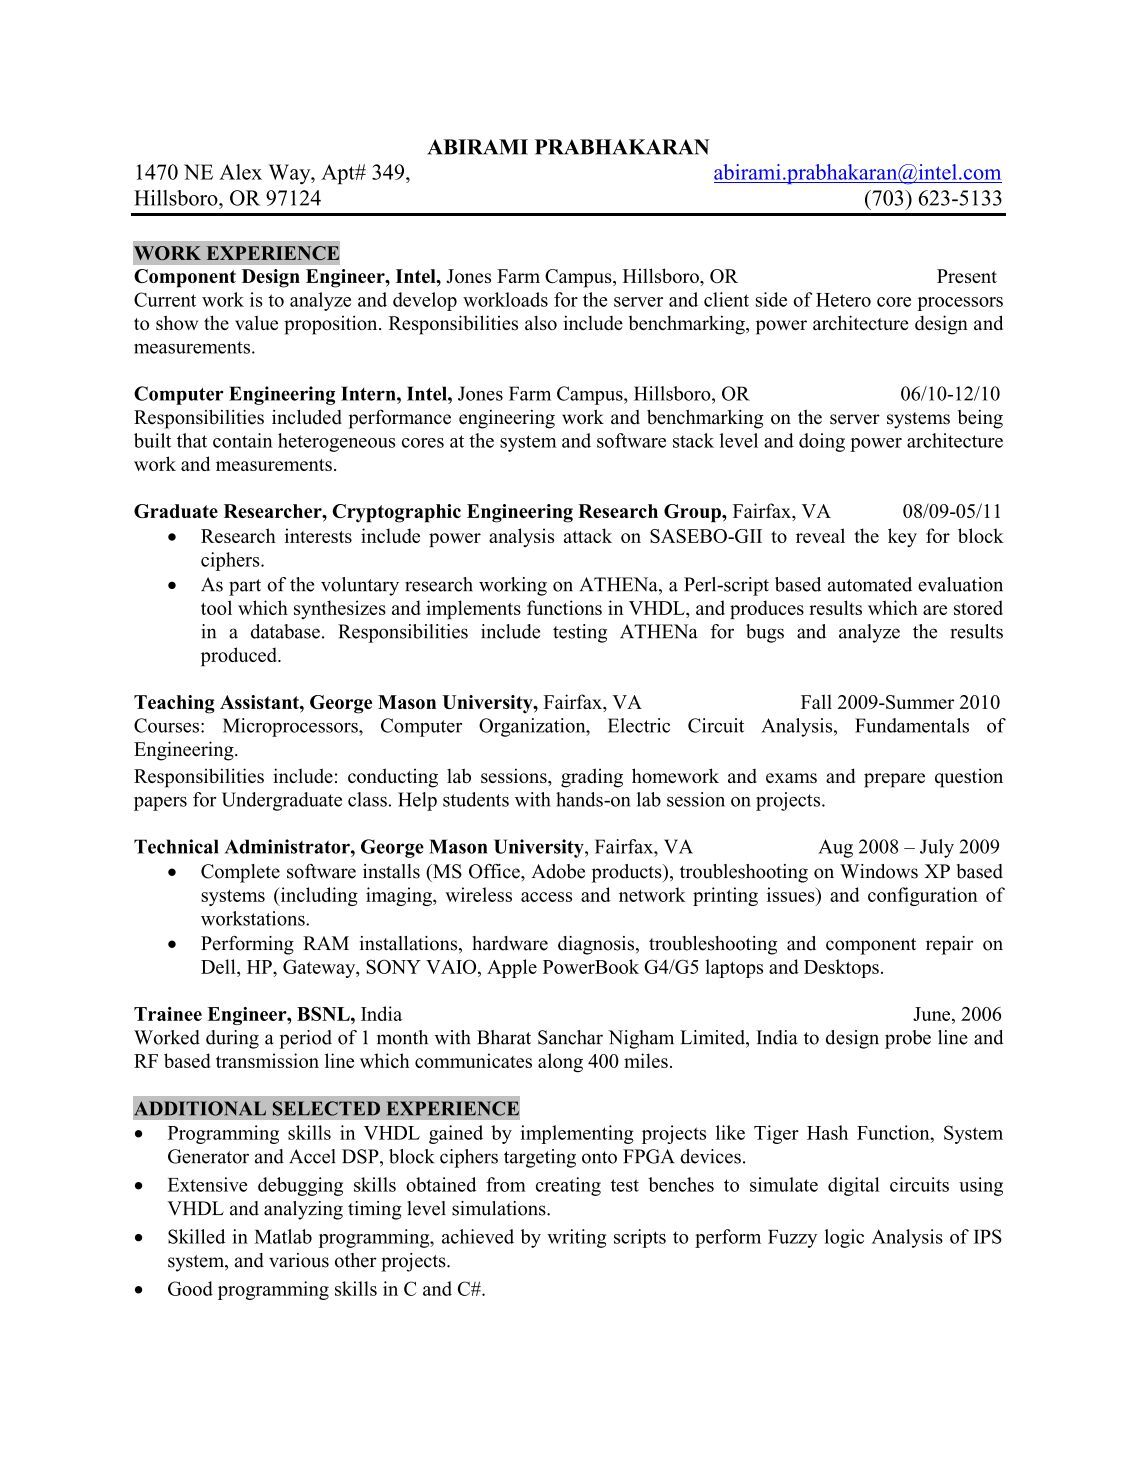 drilling engineer sample resume resume cv cover letter